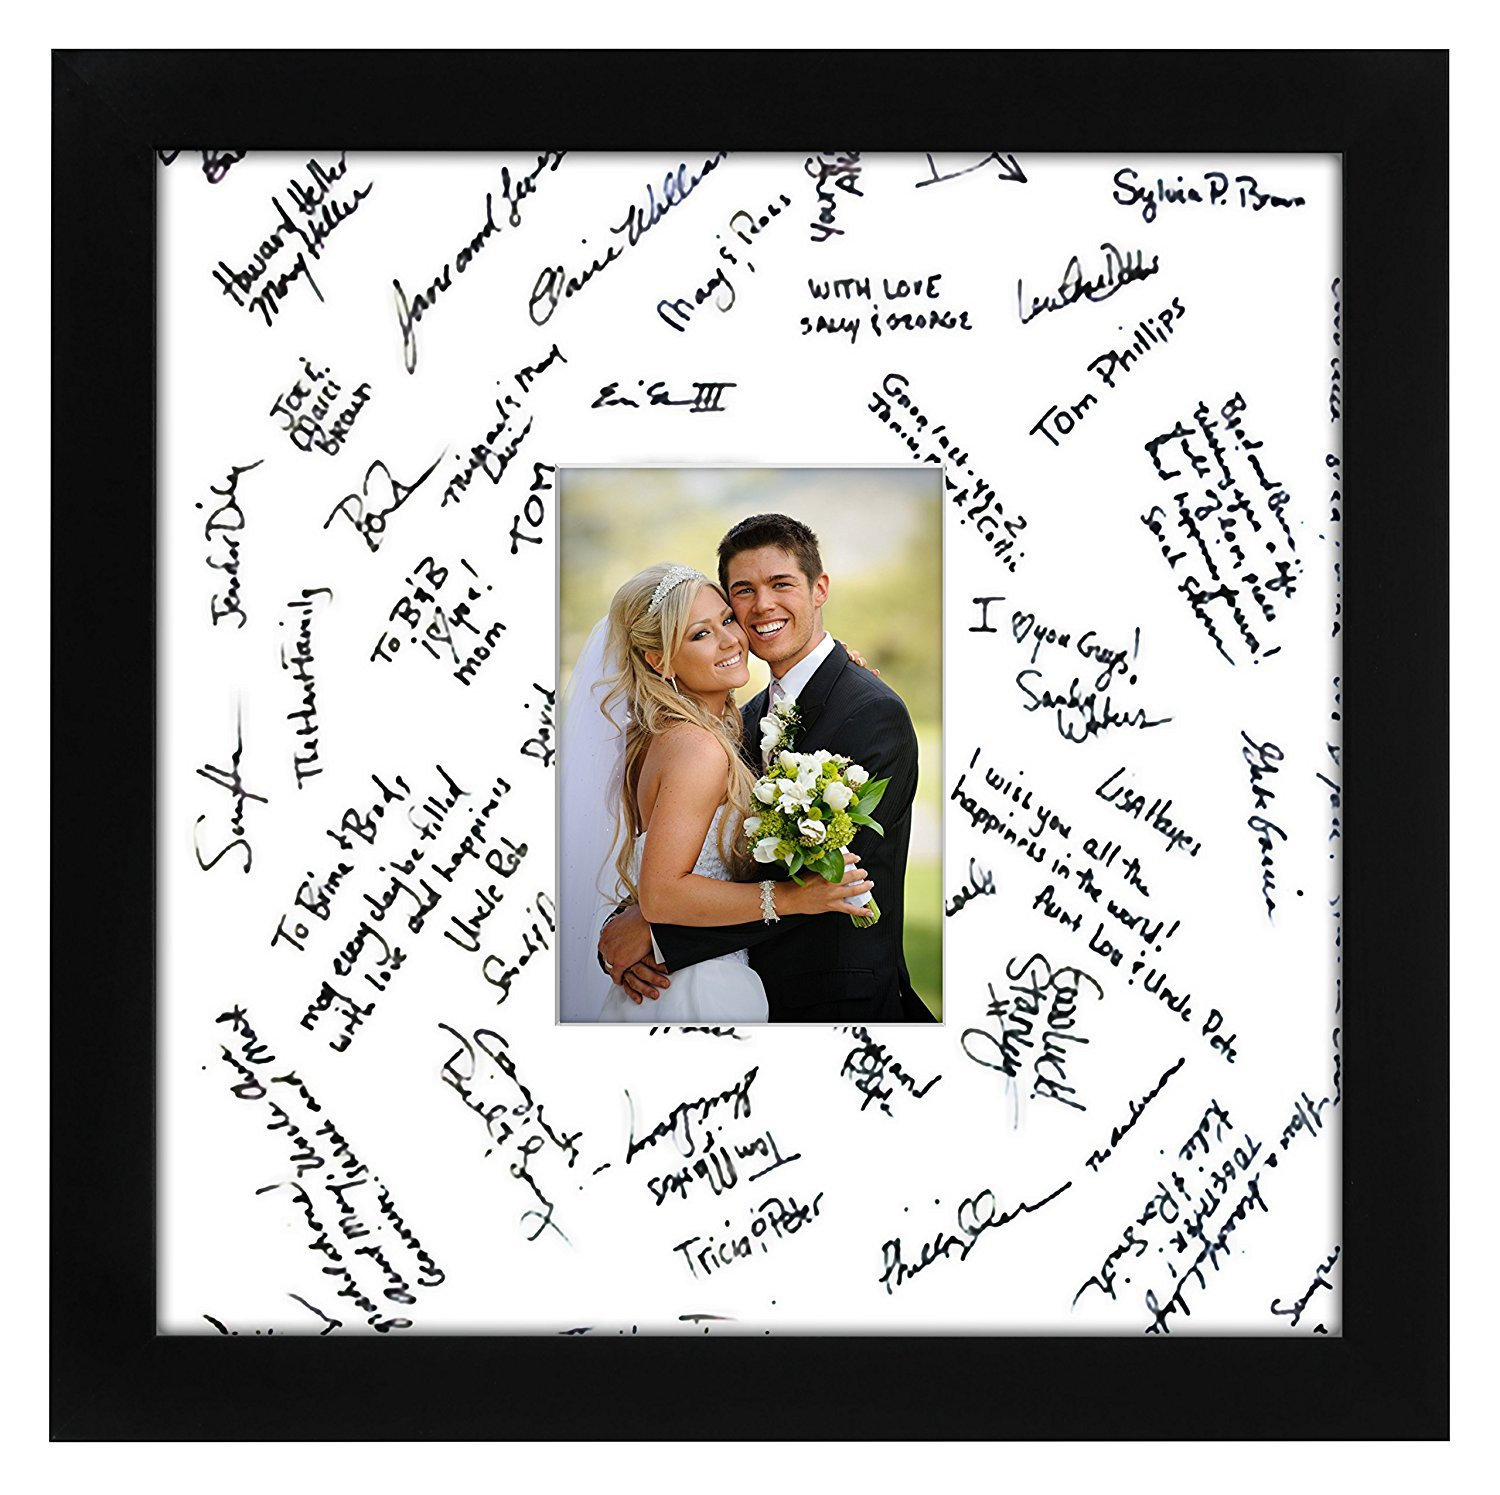 Americanflat 14x14 Wedding Signature Picture Frame - Display Pictures 5x7 or 14x14 Without Mat - Made with Glass by Americanflat